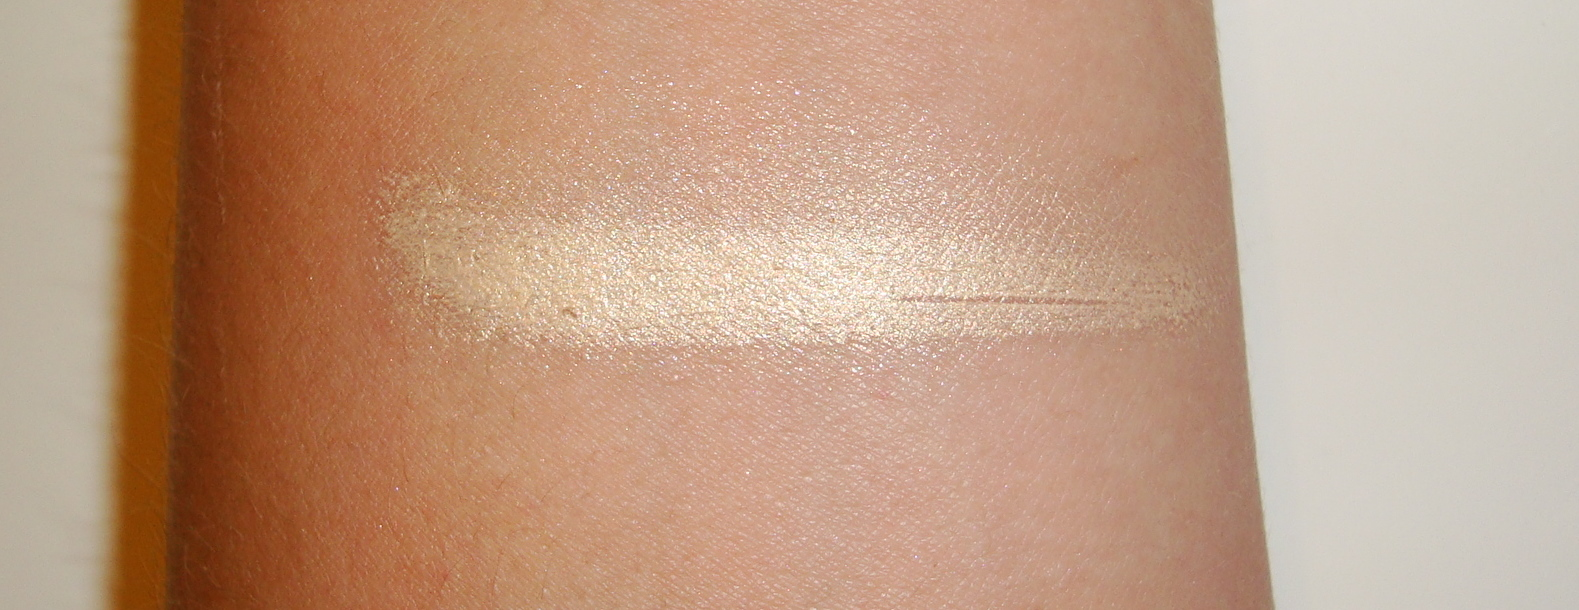 Shadow Insurance Softly Illuminating Eyeshadow Primer - Candlelight by Too Faced #6